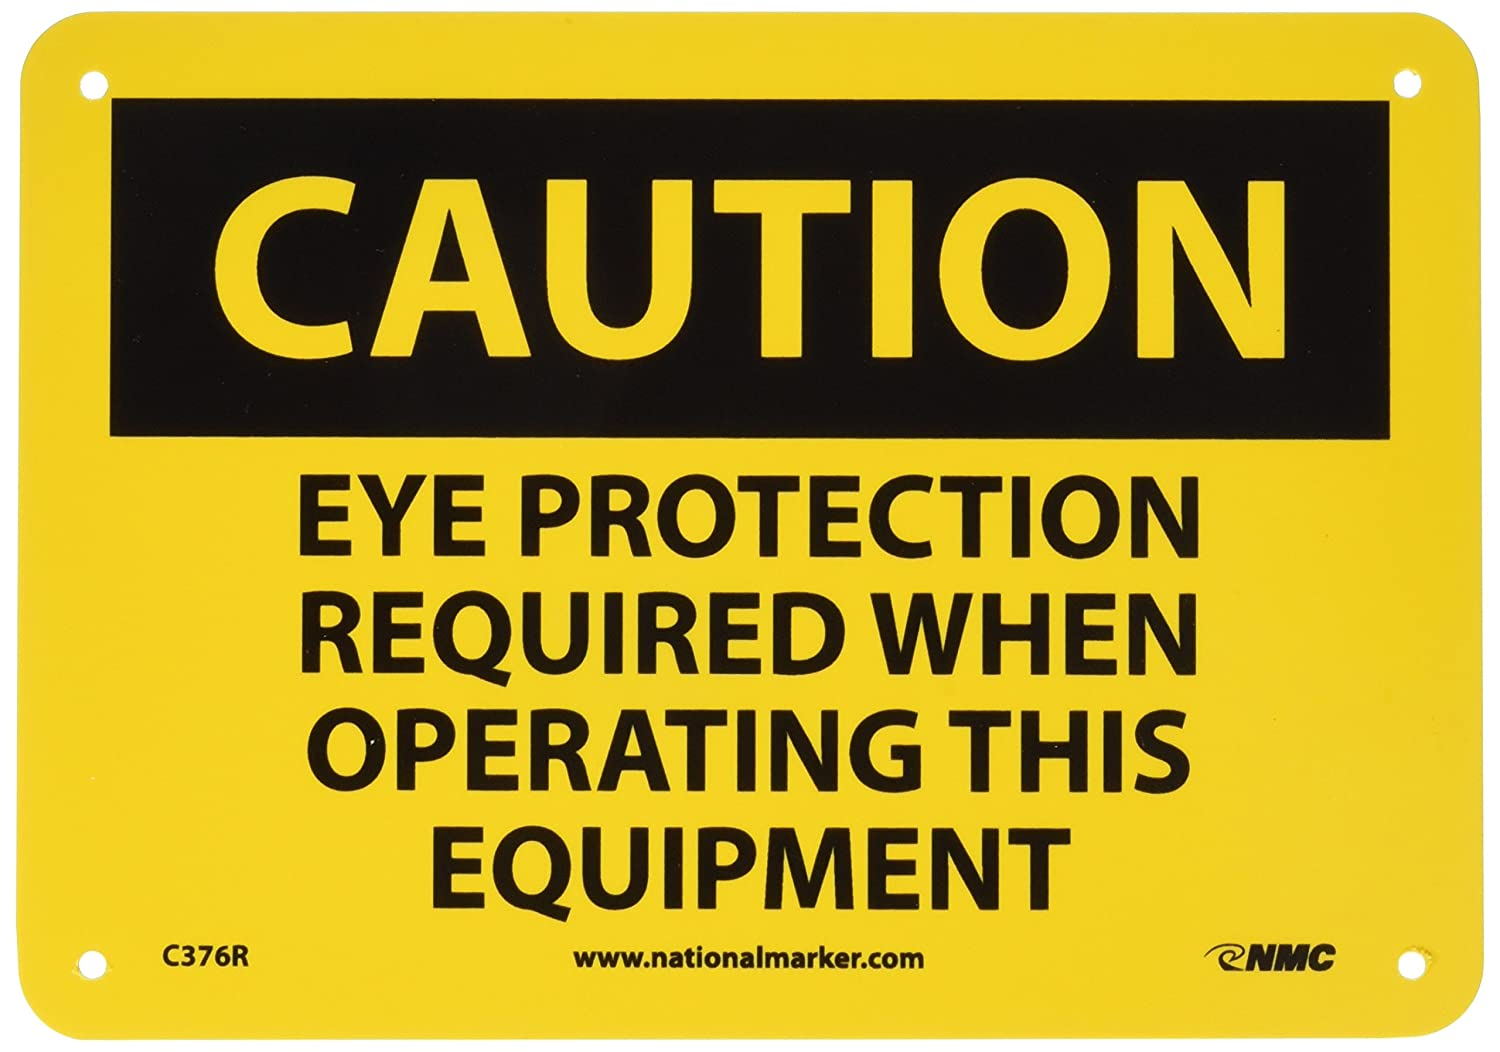 EYE PROTECTION REQUIRED WHEN OPERATING THIS EQUIPMENT Legend CAUTION NMC C376RB OSHA Sign Black on Yellow 14 Length x 10 Height Rigid Plastic